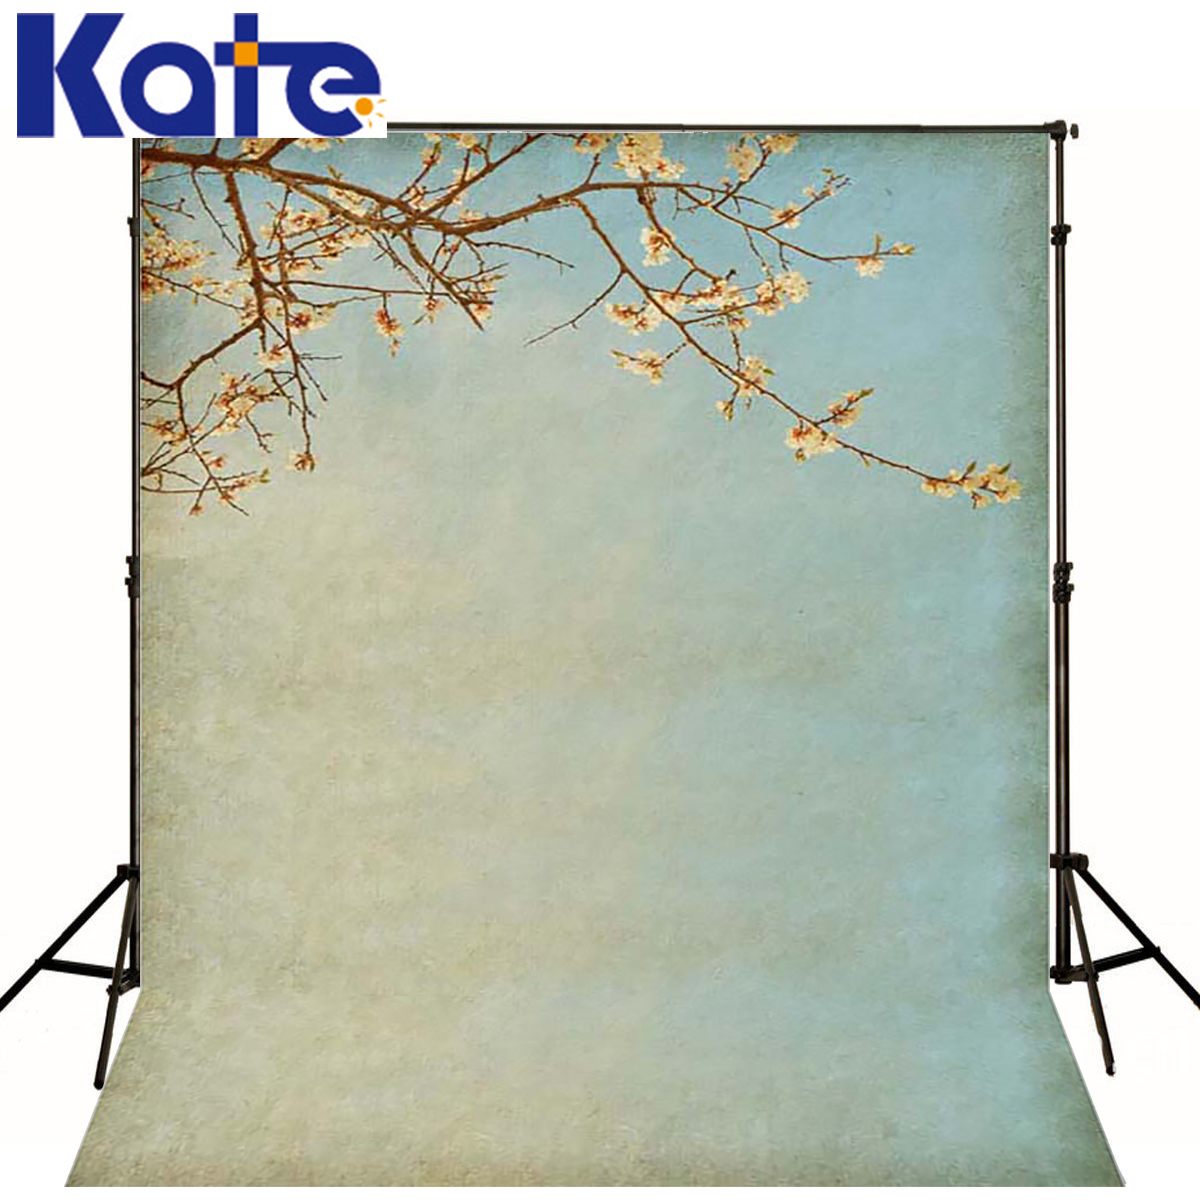 Photo Background Withered Branches Photography Background Newborn Peach Blossom Background Customize Backdrop